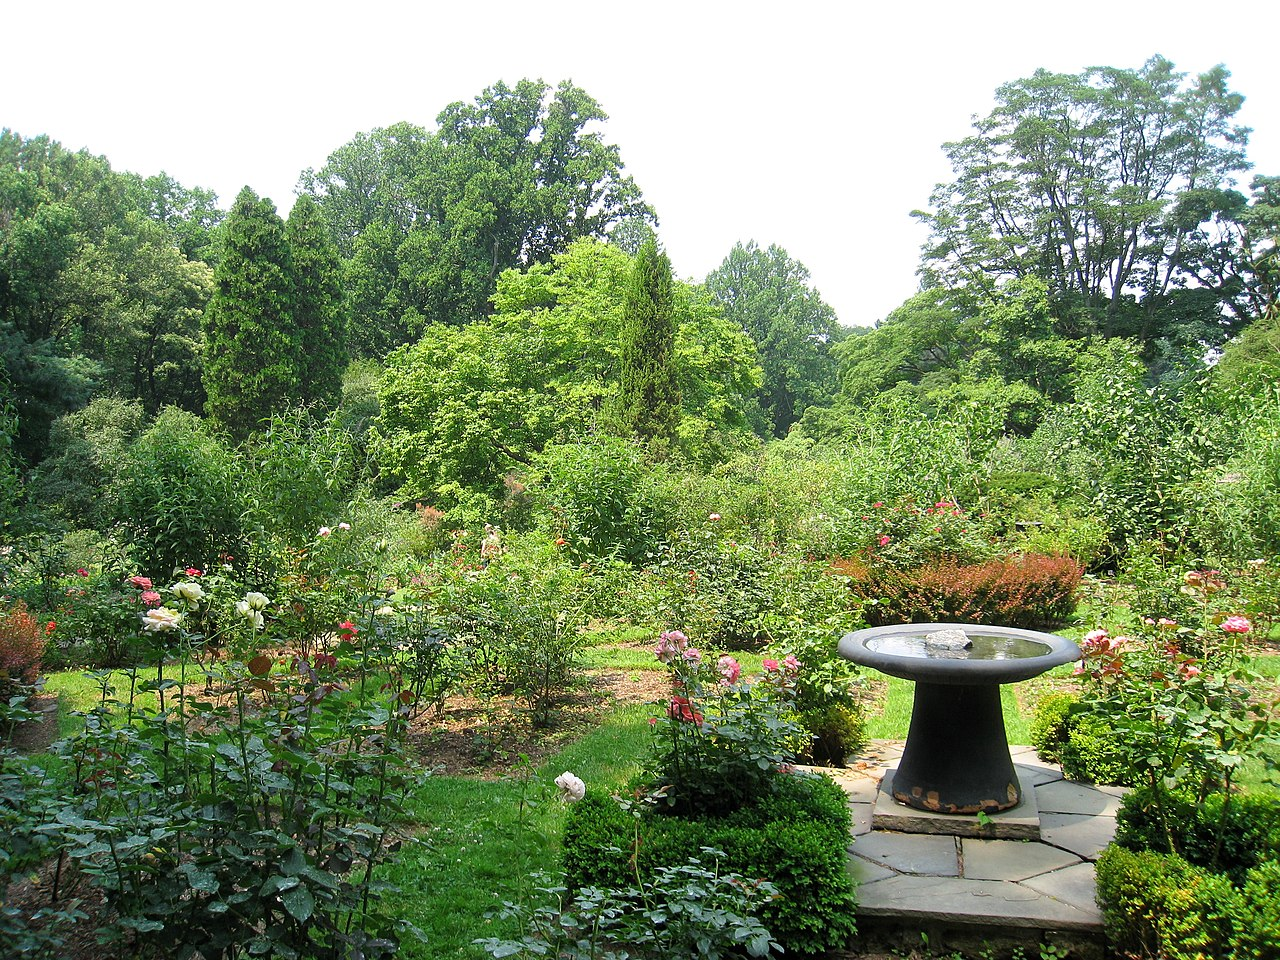 File:Barnes Foundation, Merion, PA - arboretum and garden ...